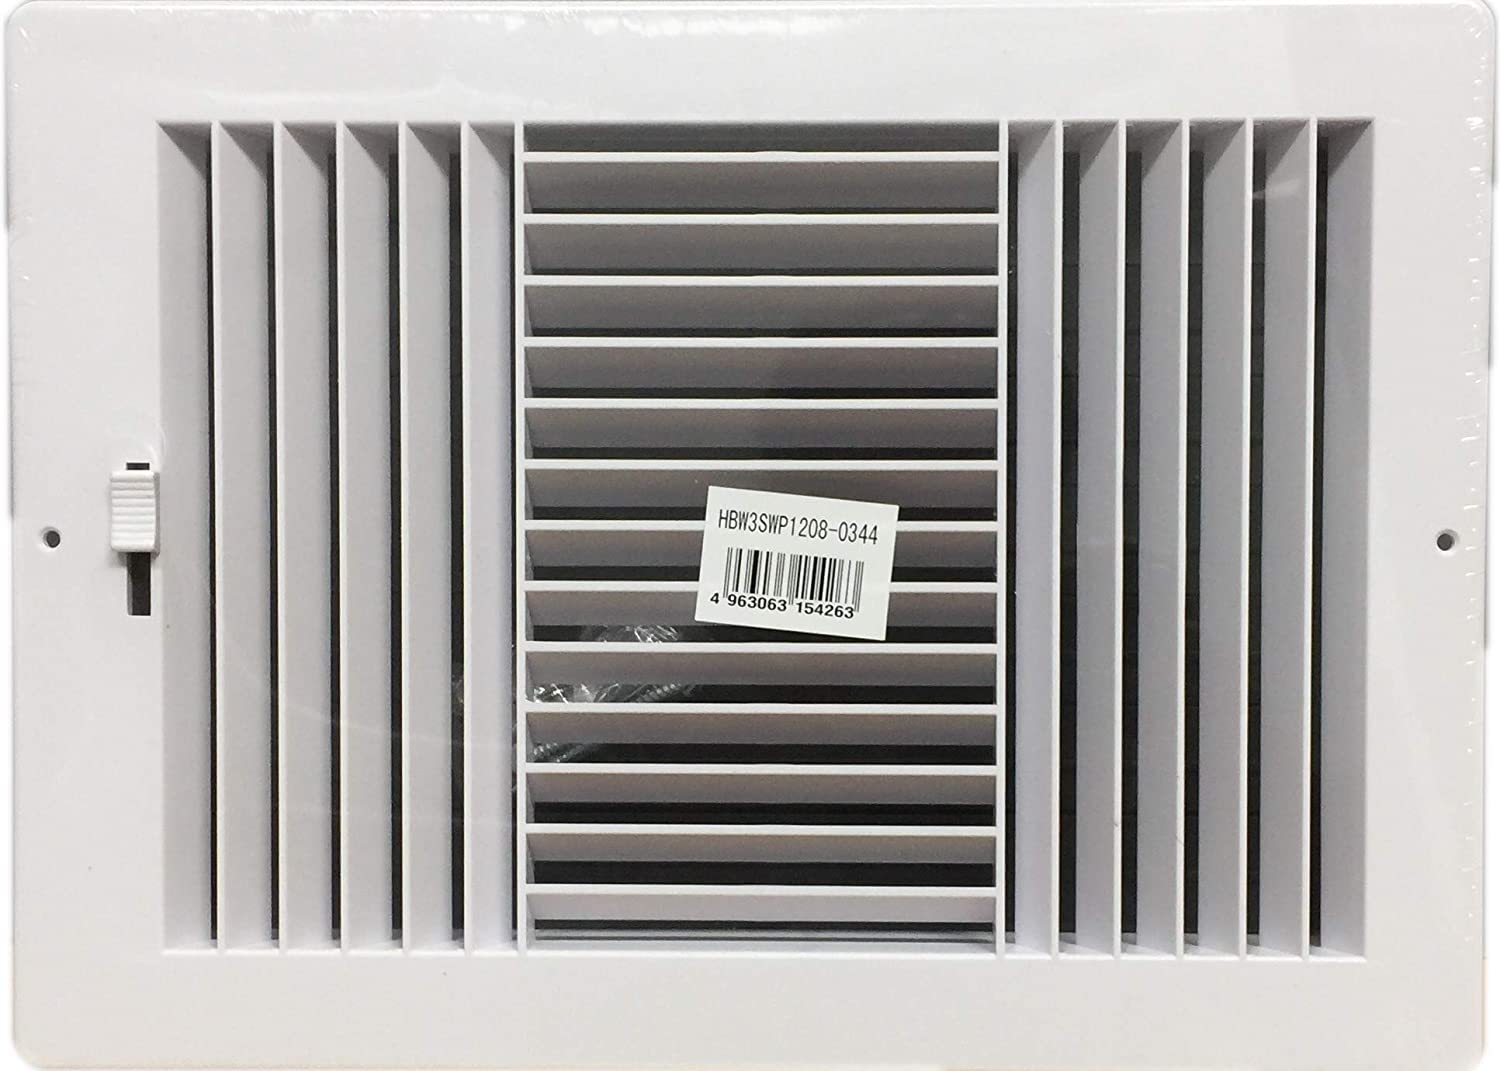 """HBW Three-Way Plastic Side Wall/Ceiling Register in White 12"""" w X 8"""" h for Duct Opening (Outside Dimension is 13.75"""" w X 10"""" h)"""